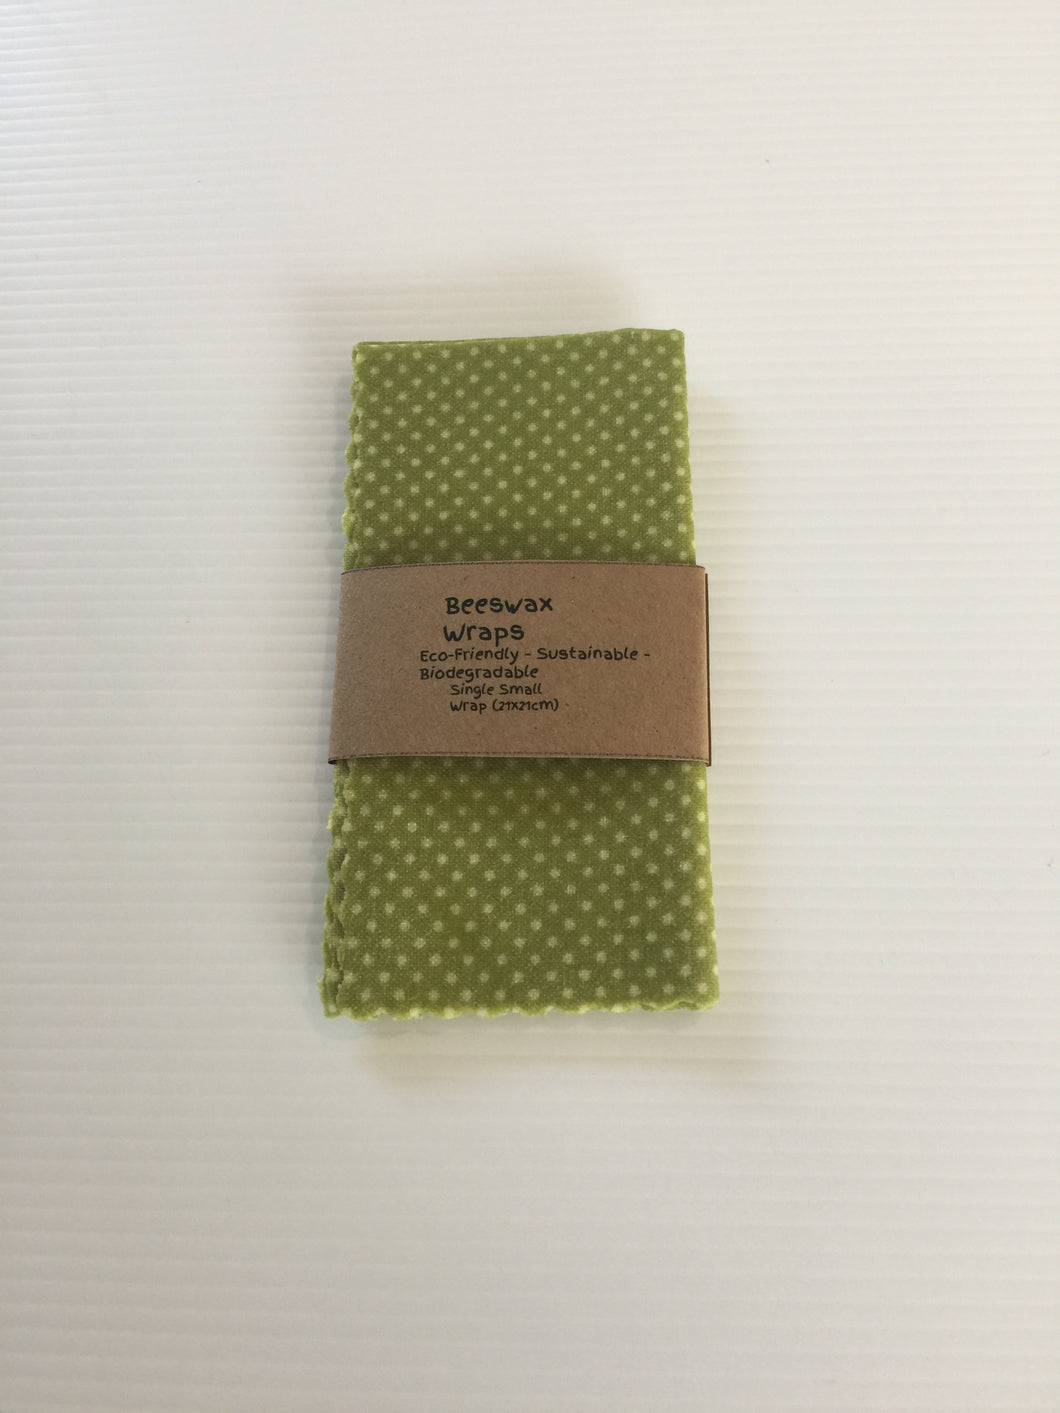 Beeswax Wraps Small Size. (Green with White Dots)